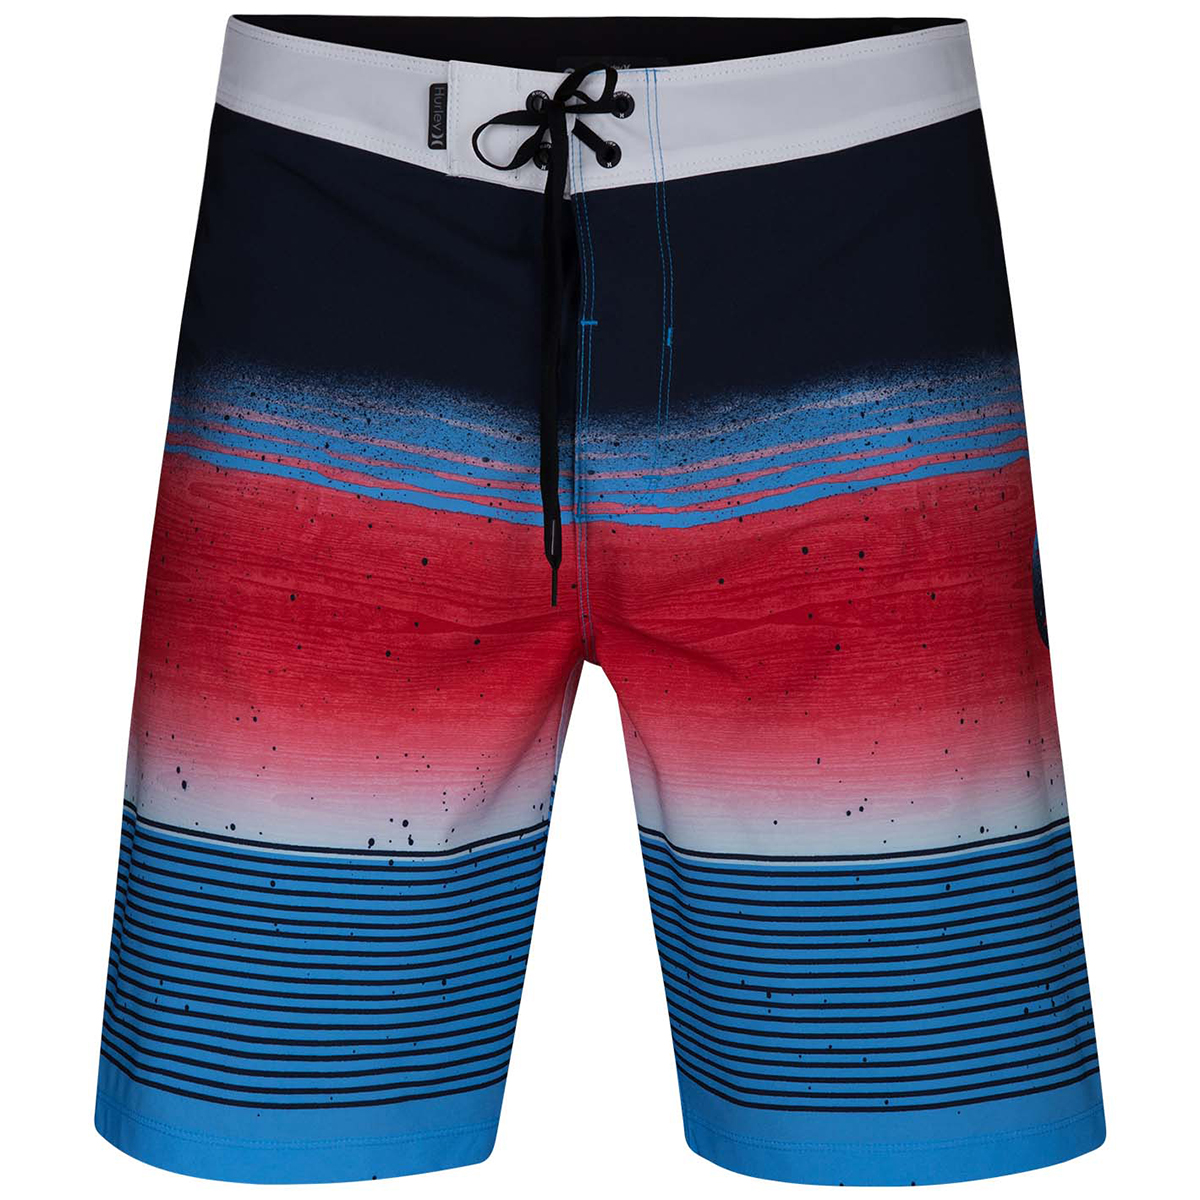 "Hurley Young Men's Phantom Overspray 20"" Board Shorts - Blue, 32"